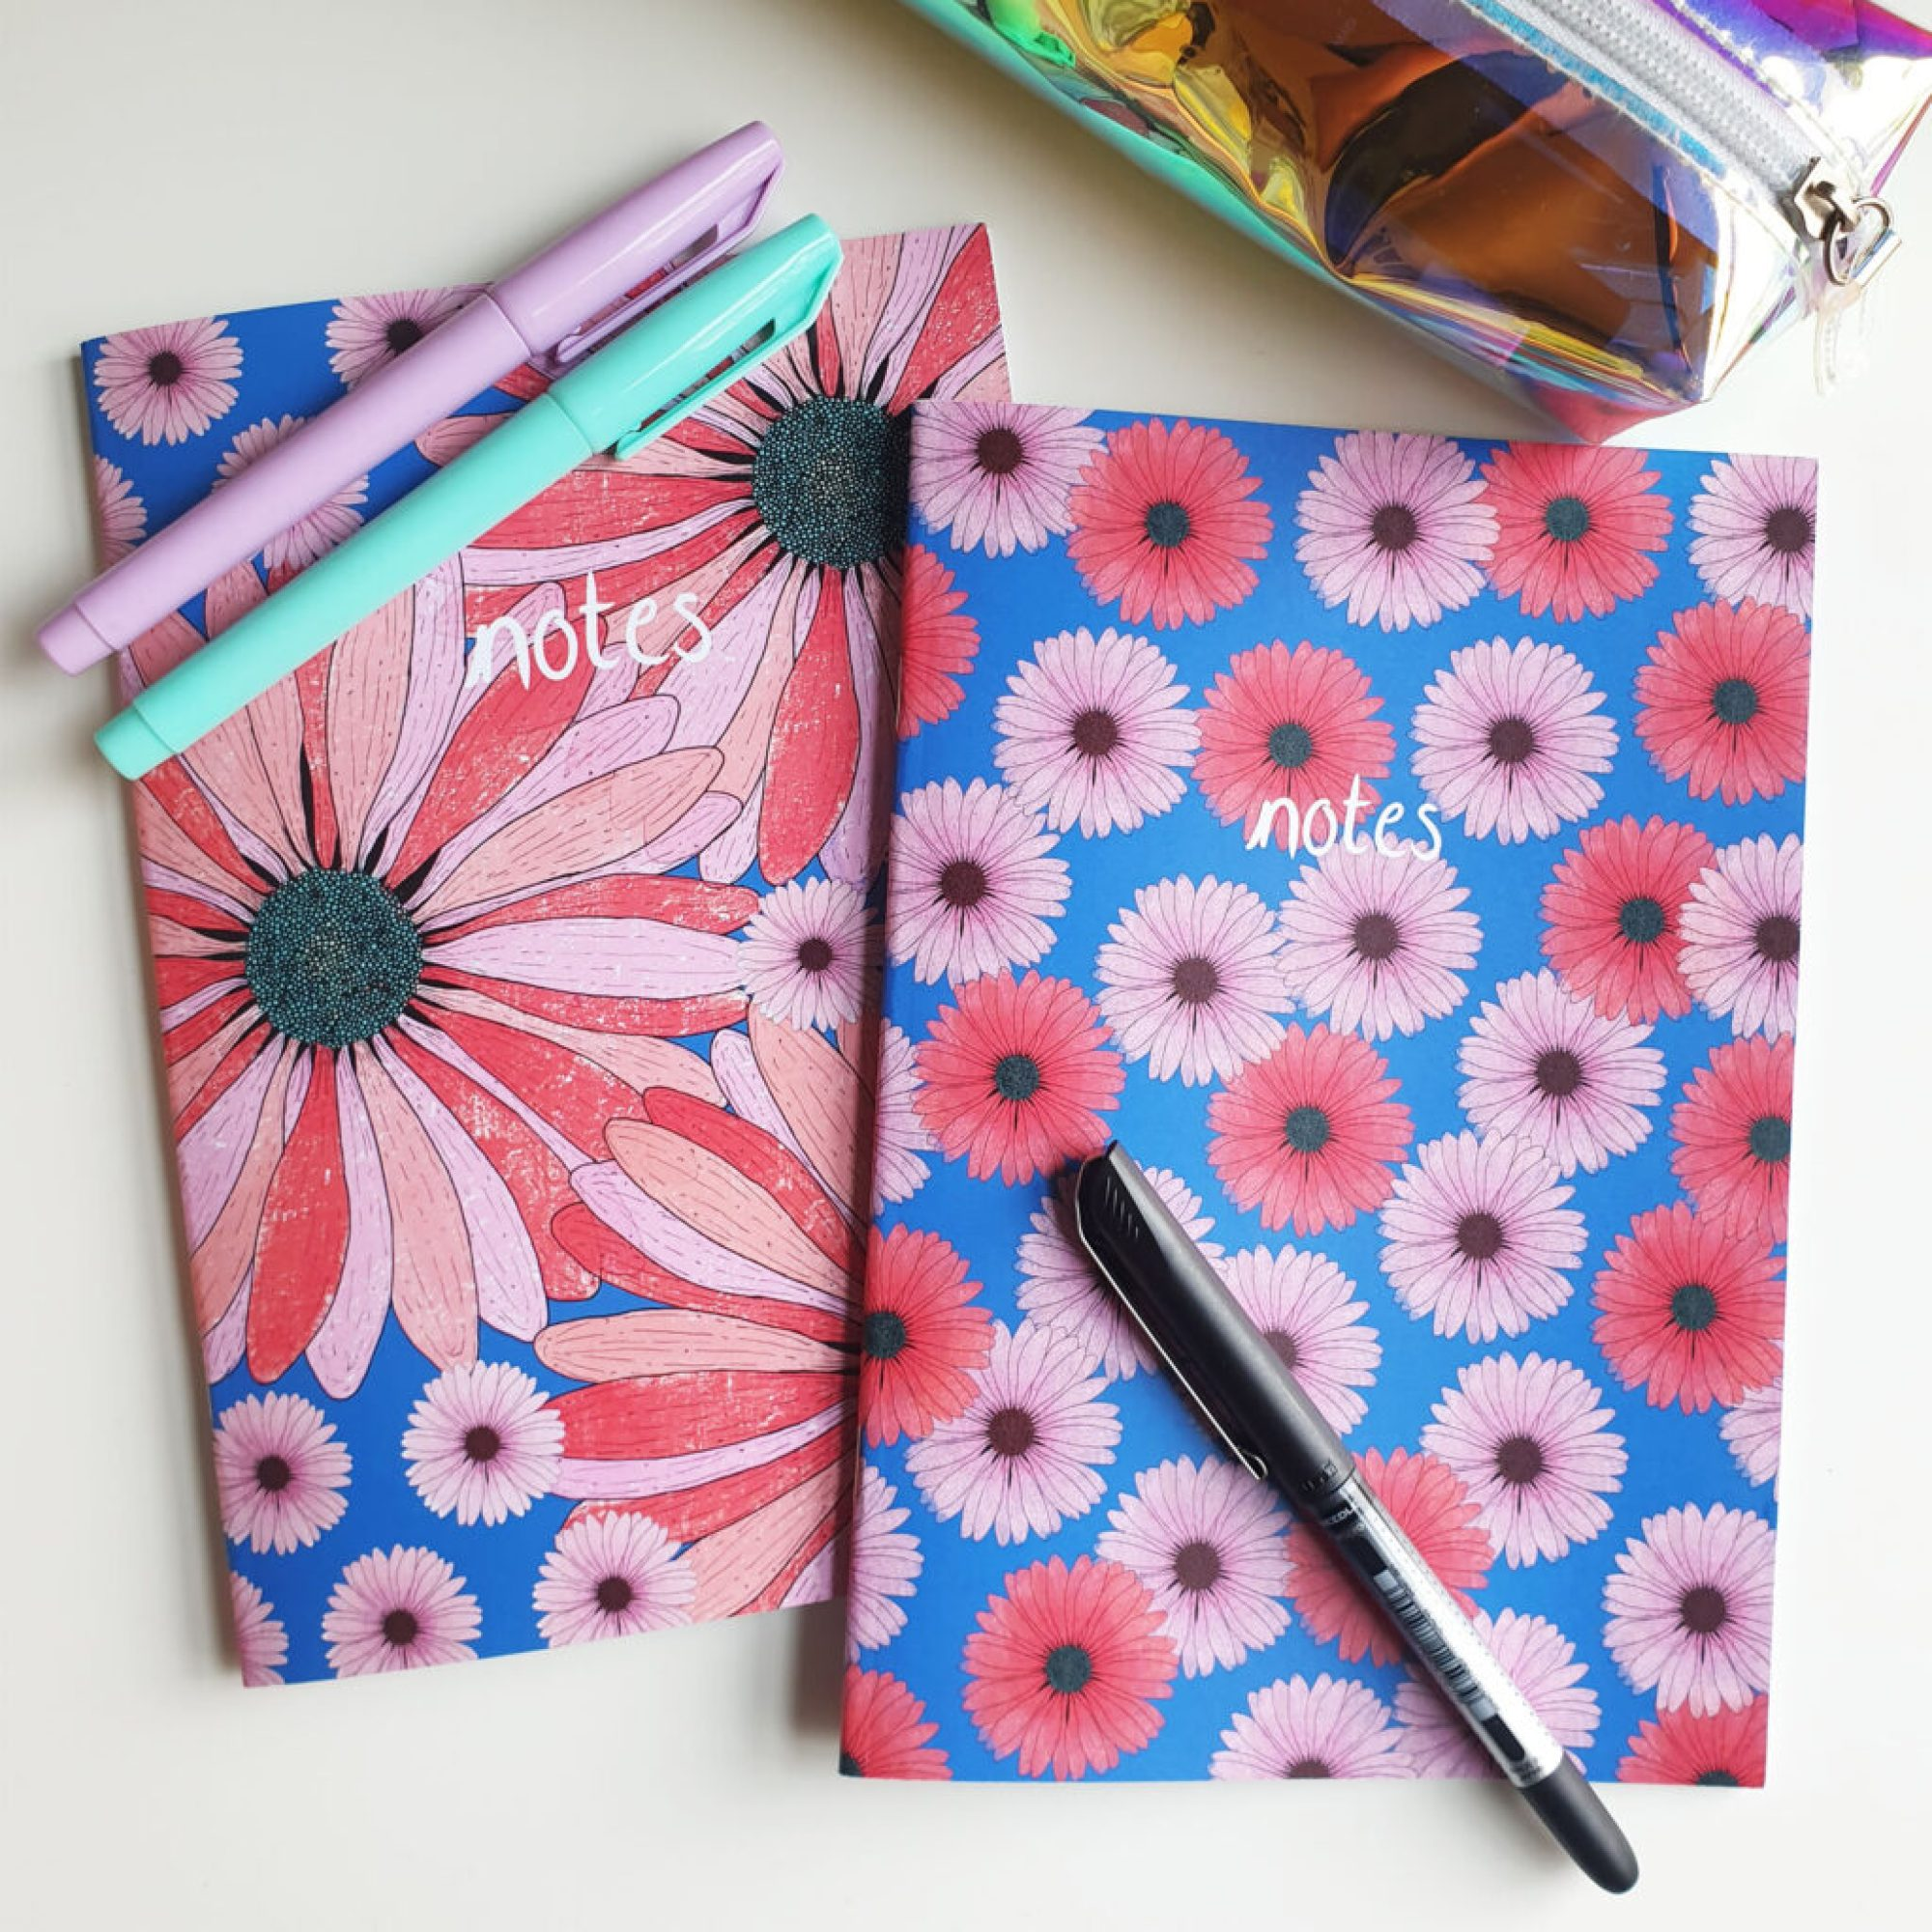 Bloom by Han, Daisy Floral A5 Lined Set of 2 Notebooks Pink and Blue Flowers with colourful office stationery and pens